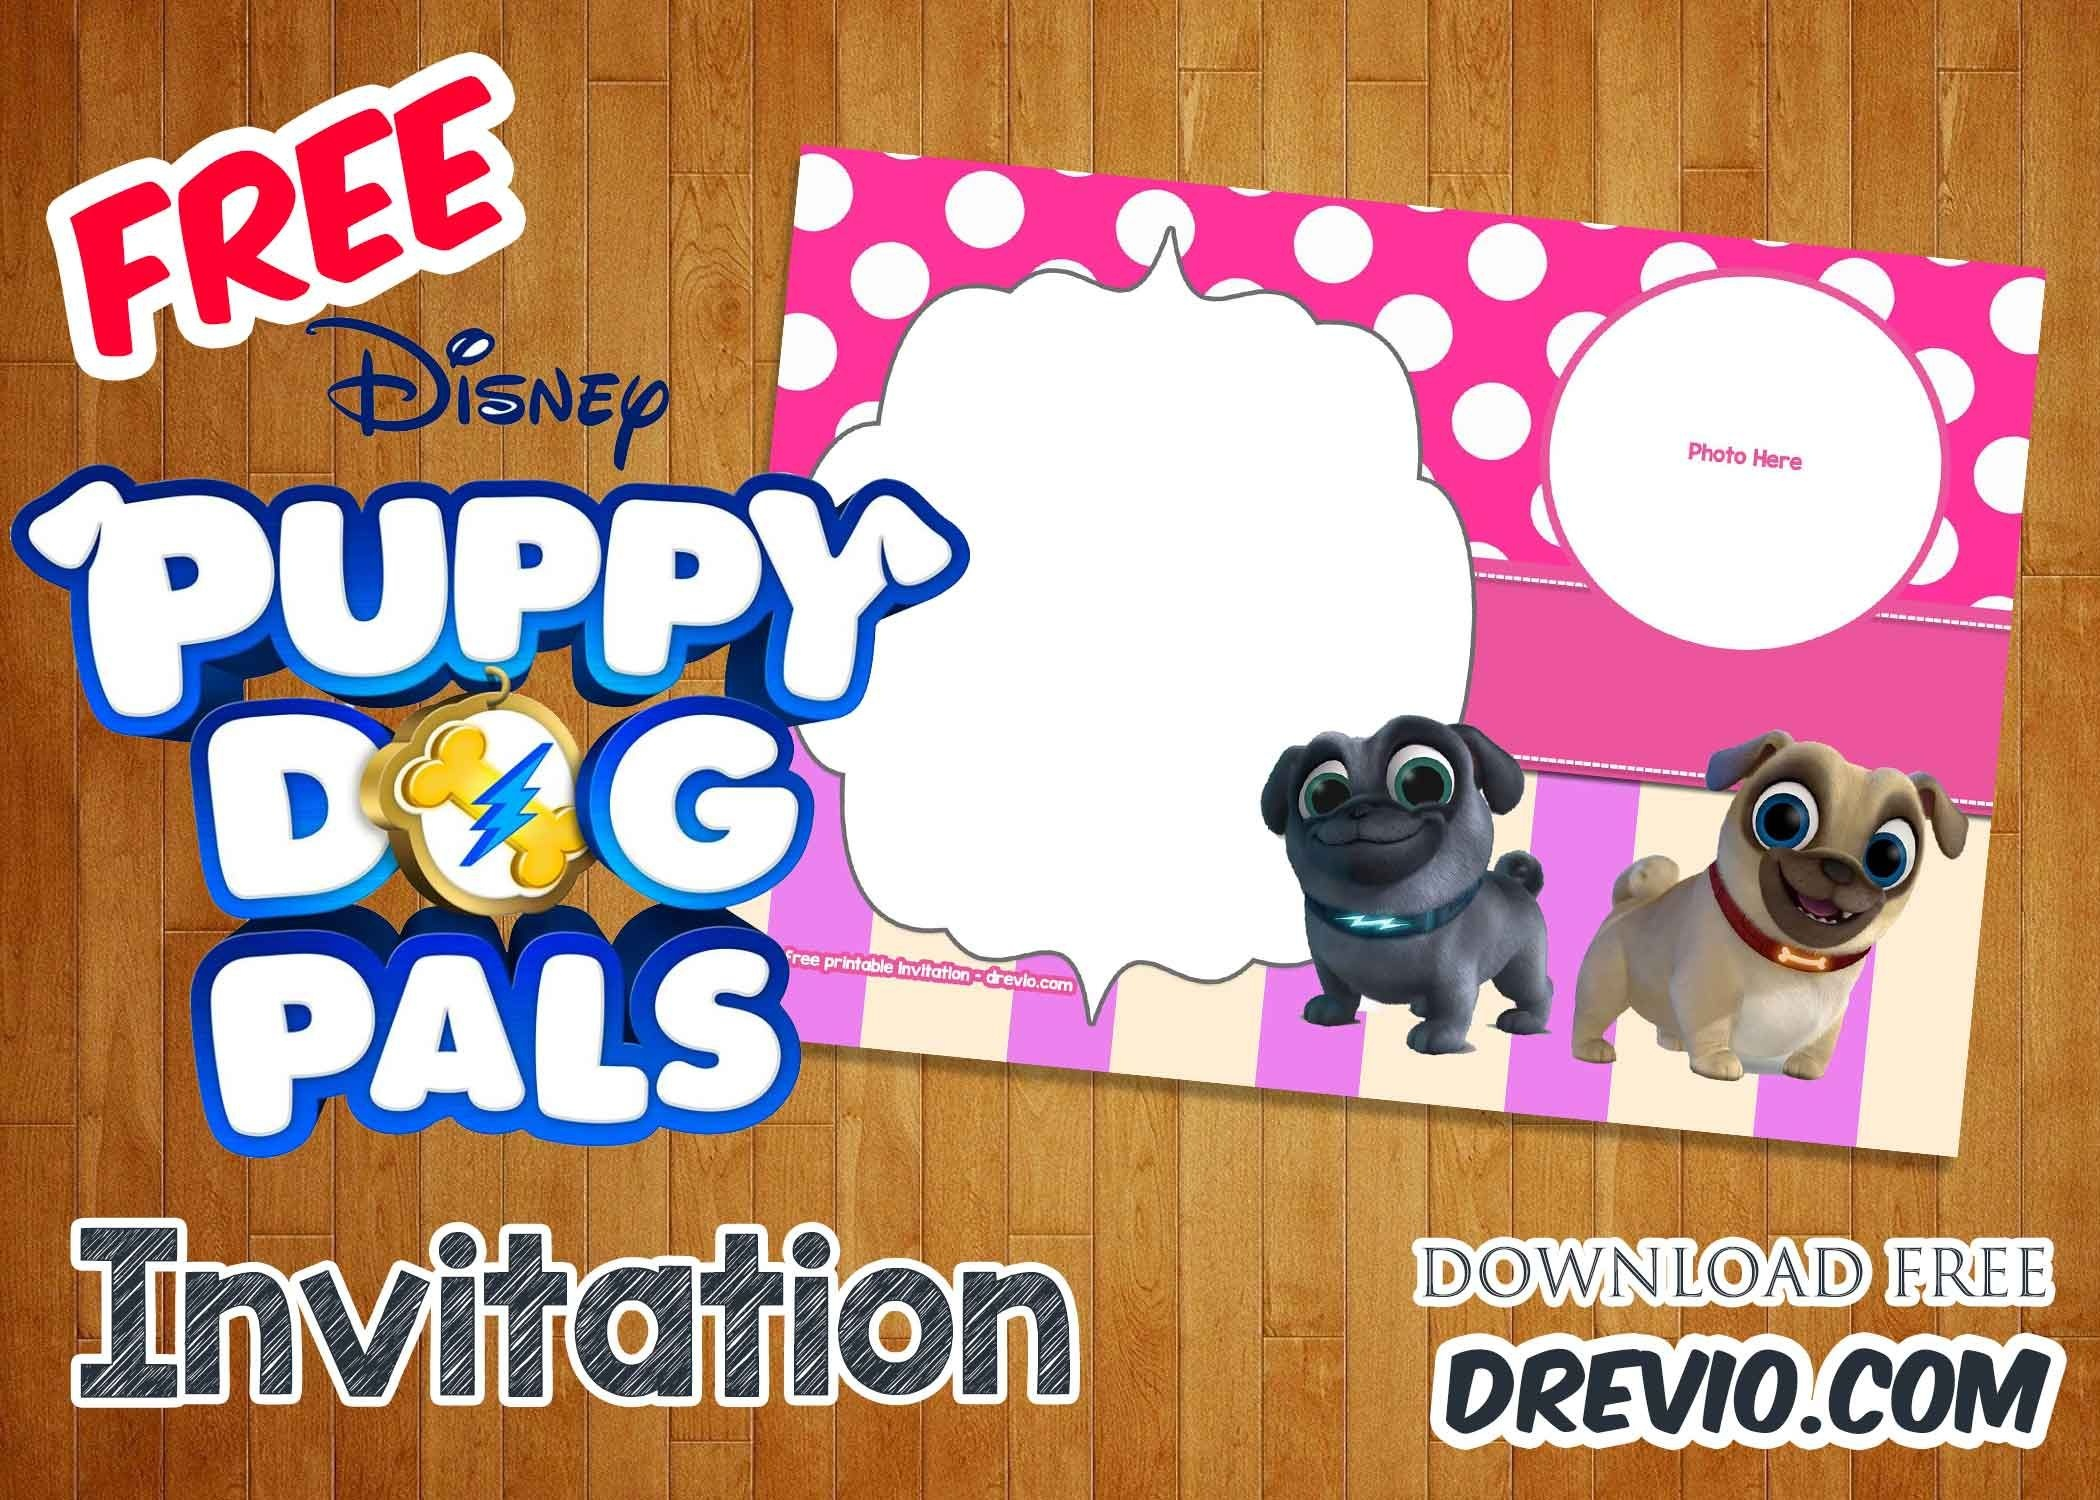 Free Disney Puppy Dog Pals Invitation Templates | Free Printable - Free Printable Puppy Dog Birthday Invitations